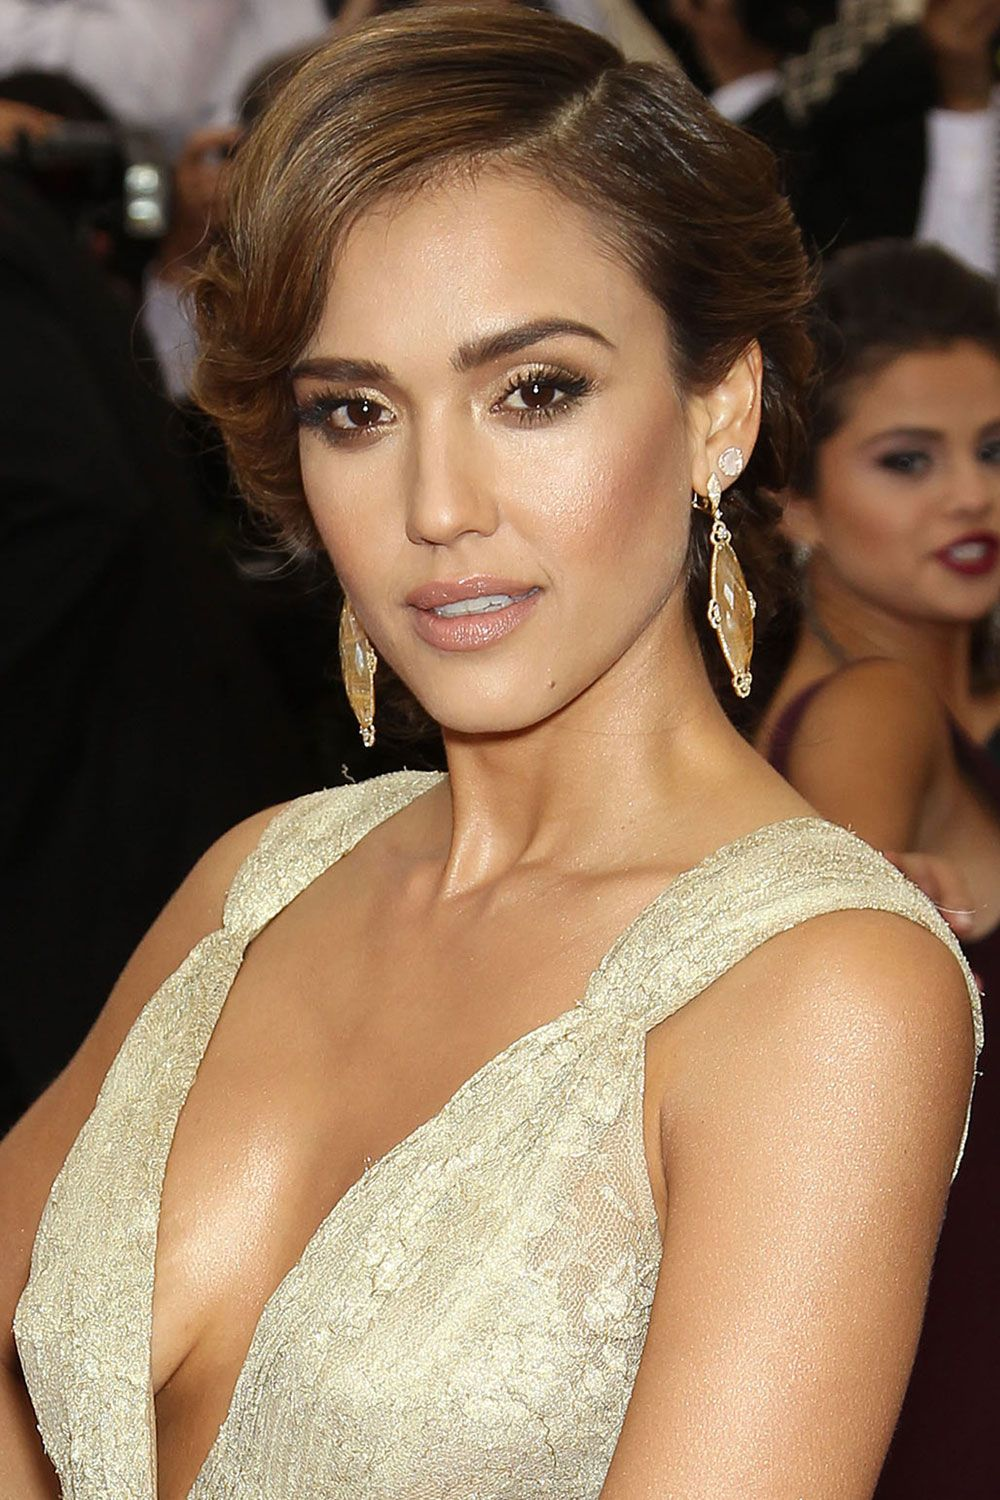 Hair updos the easytocopy styles from the red carpet up dos and